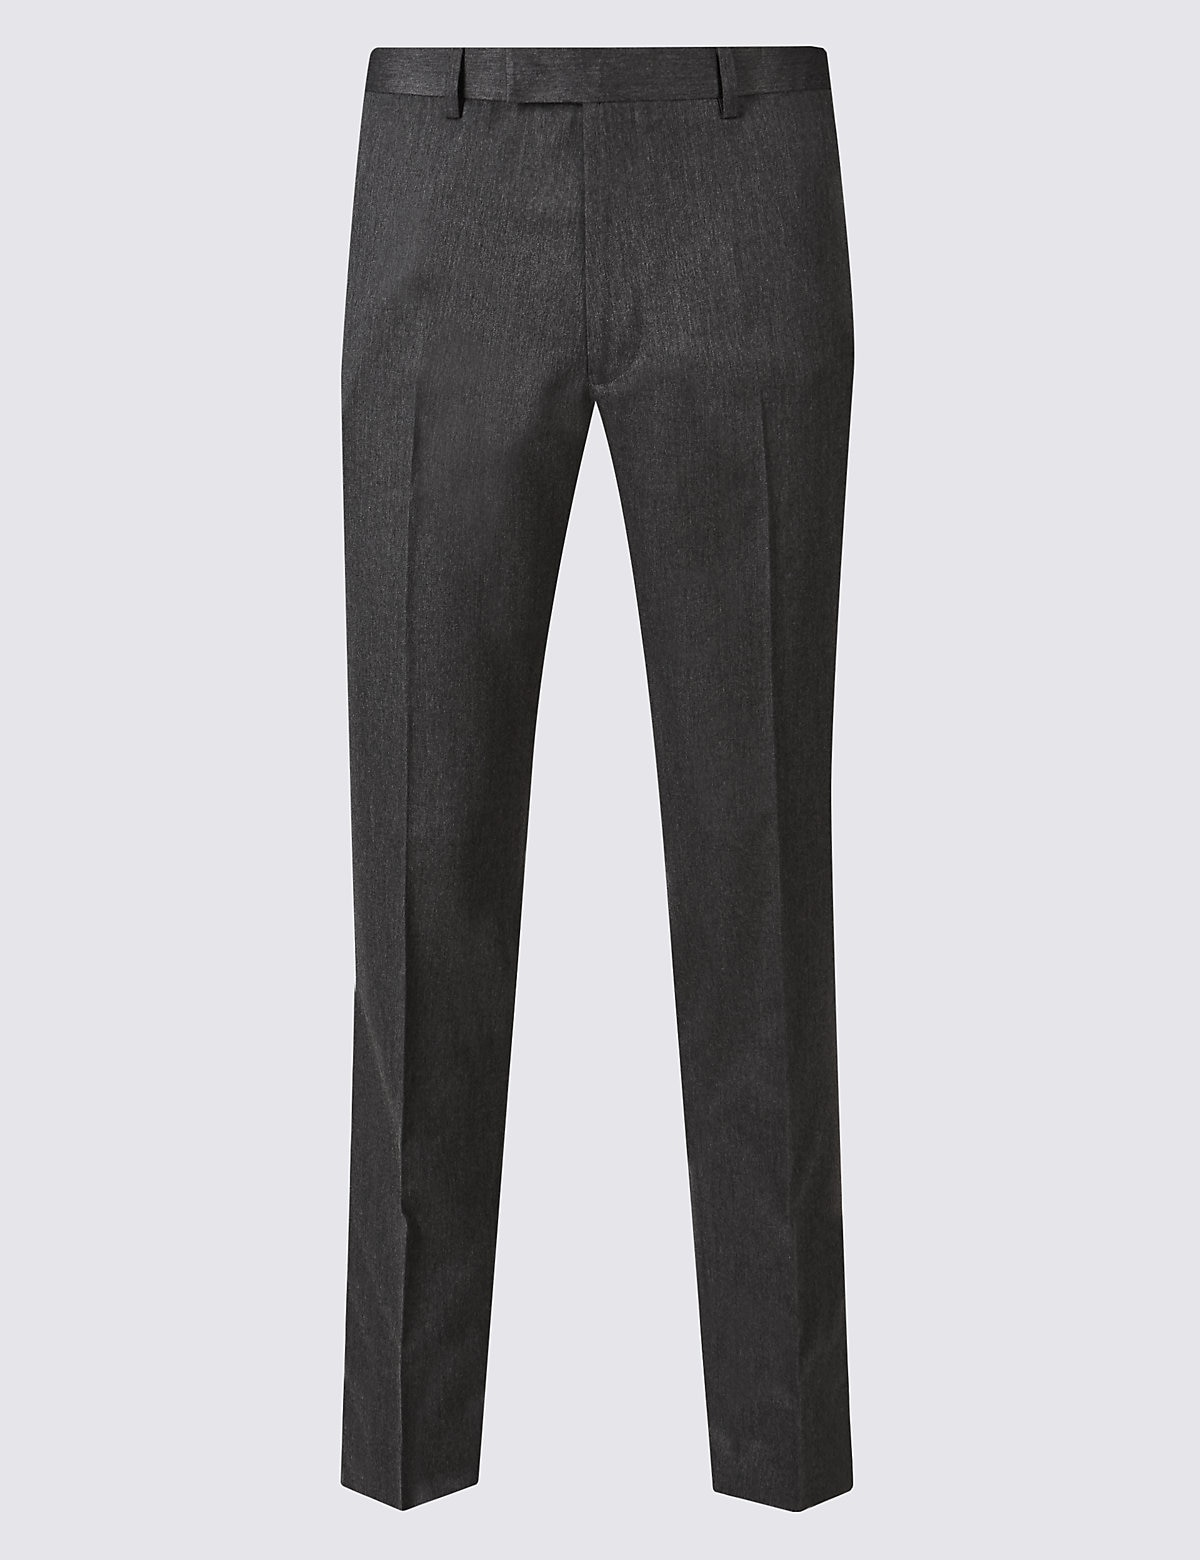 Marks & Spencer Grey Modern Slim Fit Trousers